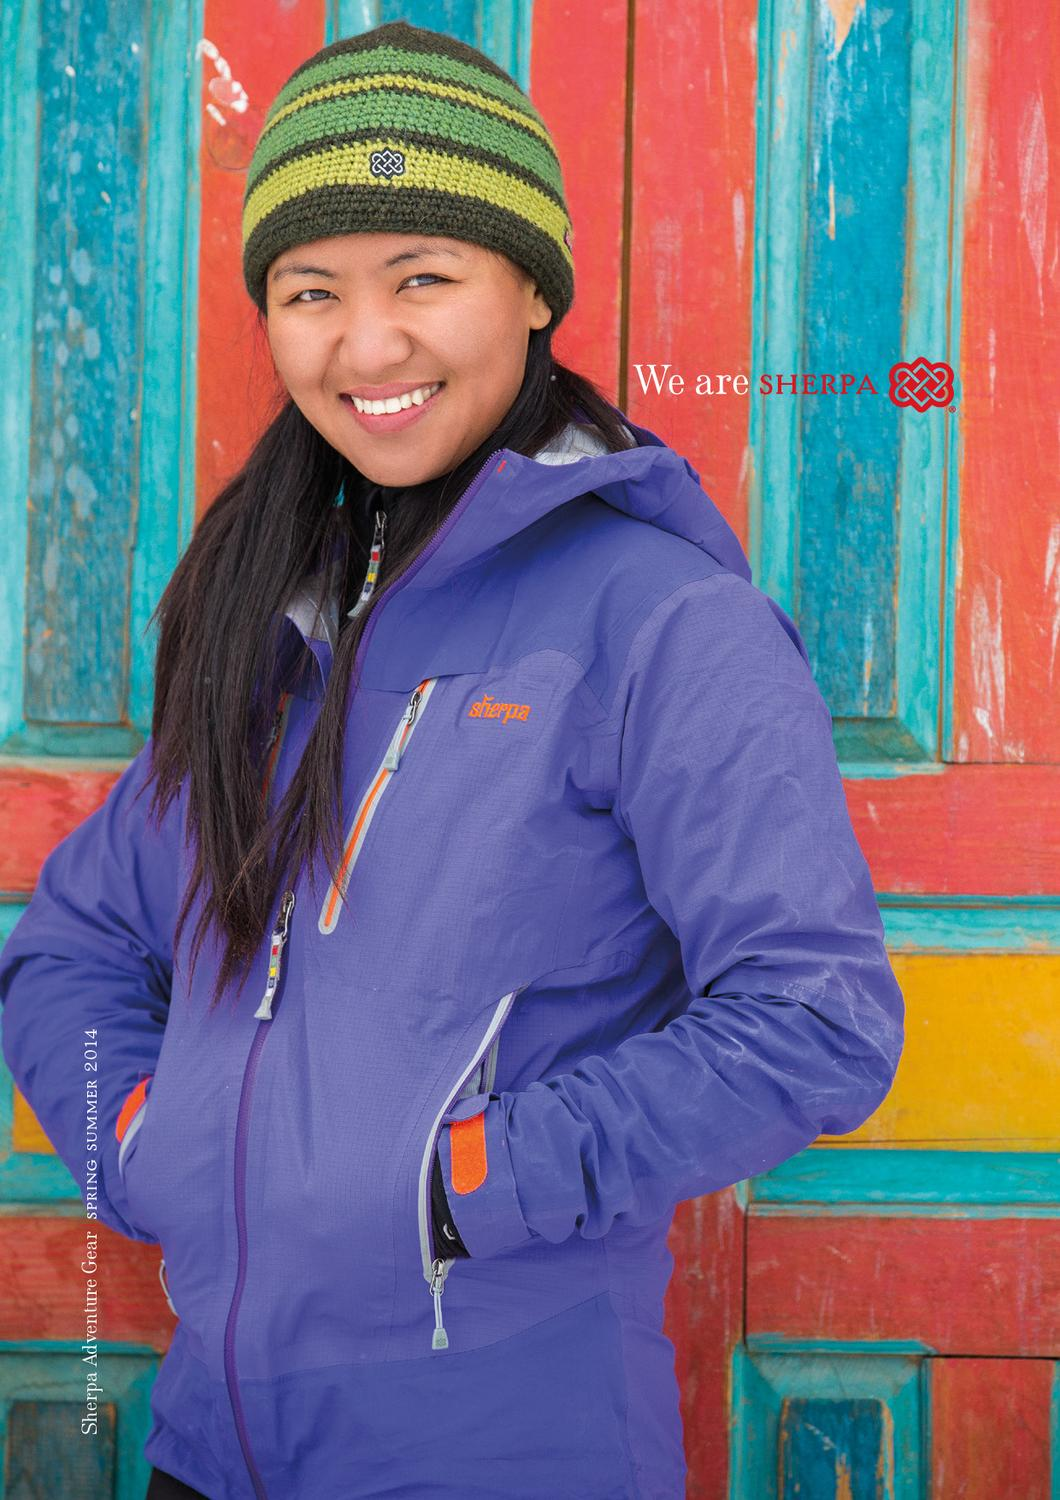 4acfb55d949 Sherpa Adventure Gear • 2014 Spring Summer Catalog by Sherpa ...